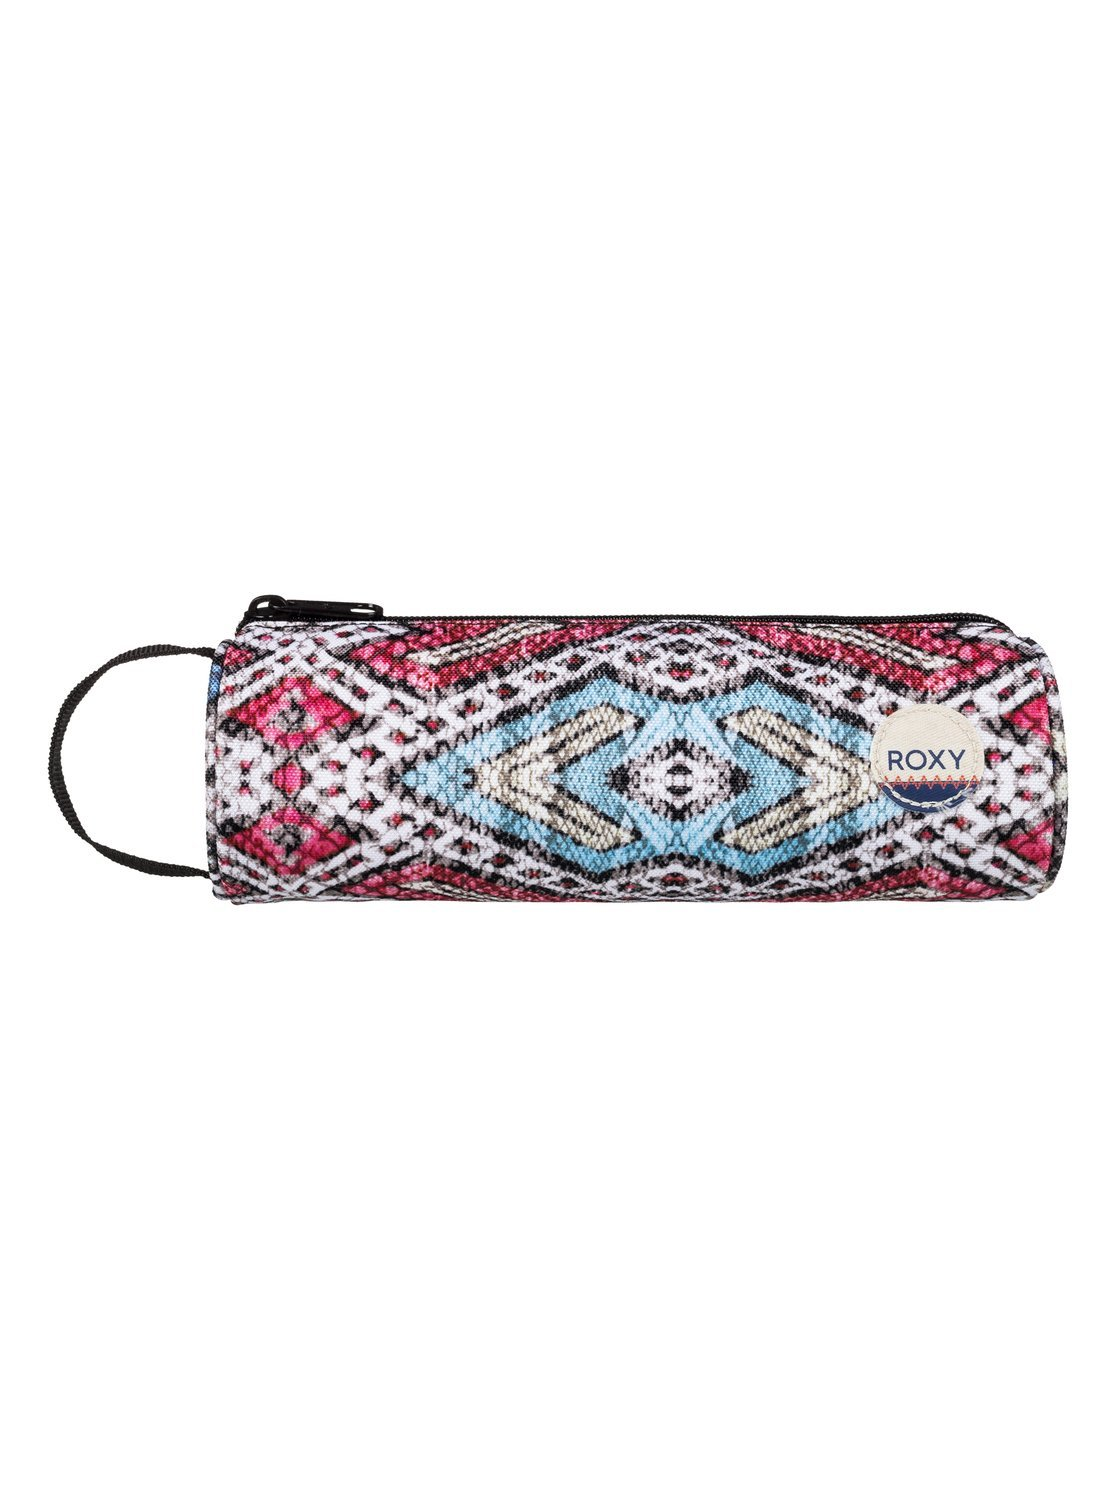 Roxy Off The Wall – Estuche para lápices impreso para Mujer, Color: REGATA SOARING EYES, Talla: 1SZ